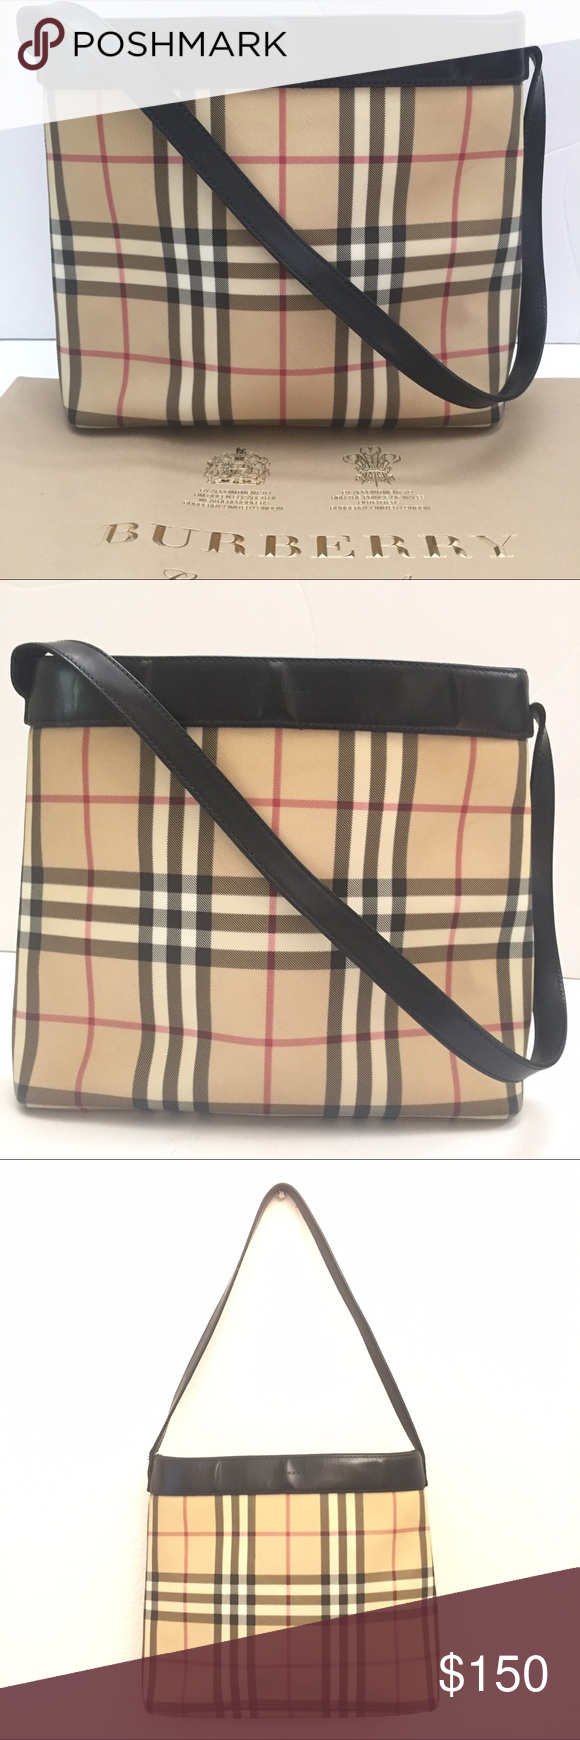 58364ab83986f Burberry Tote Medium Bag Authentic Authentic Burberry London, made ...